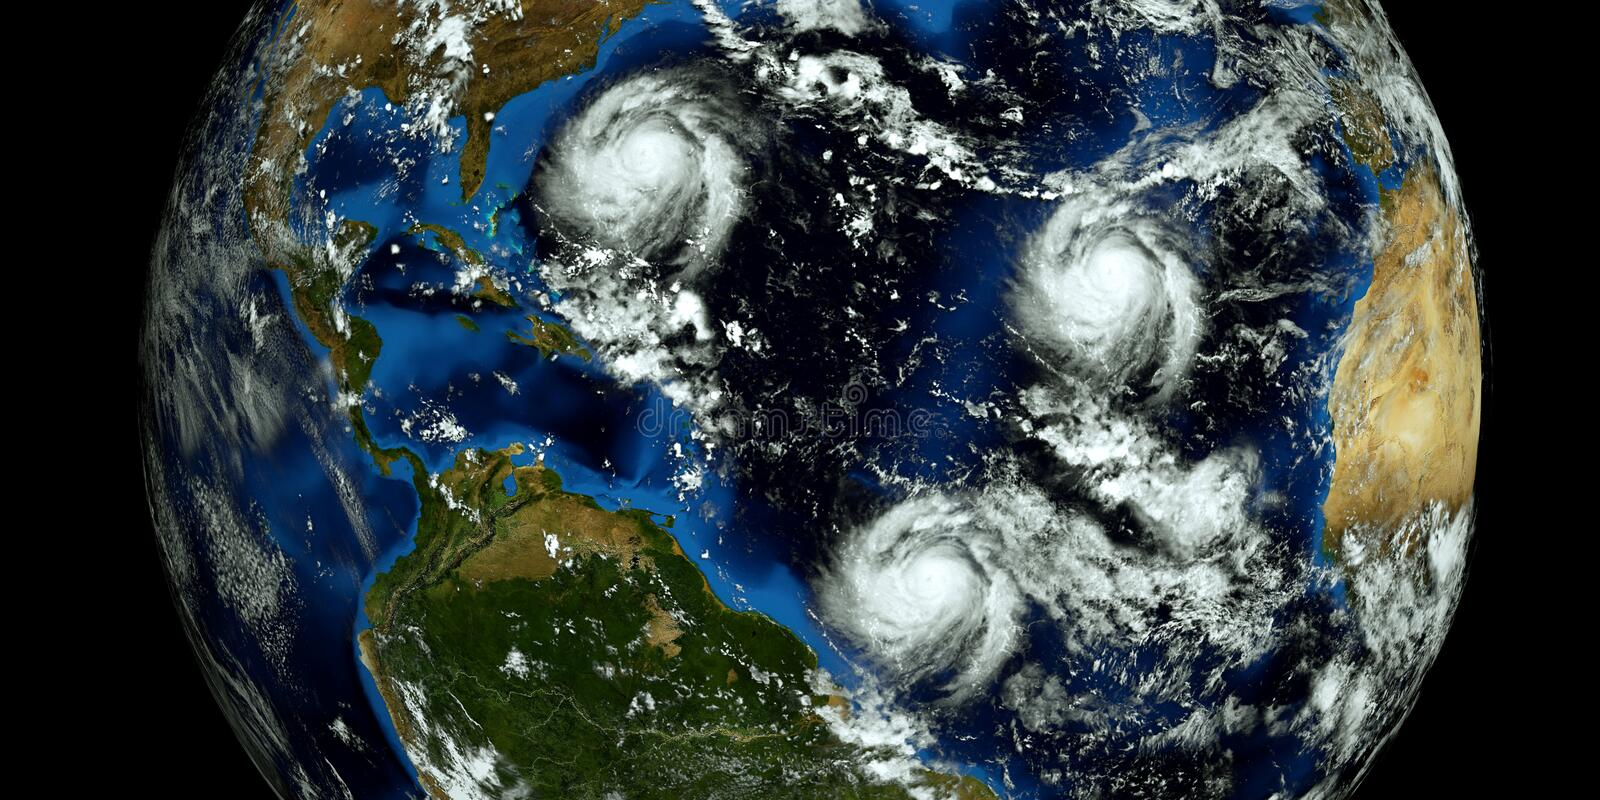 Extremely detailed and realistic high resolution 3D illustration of 2 hurricanes approaching the USA. Shot from Space. Elements of. This image are furnished by royalty free stock photography